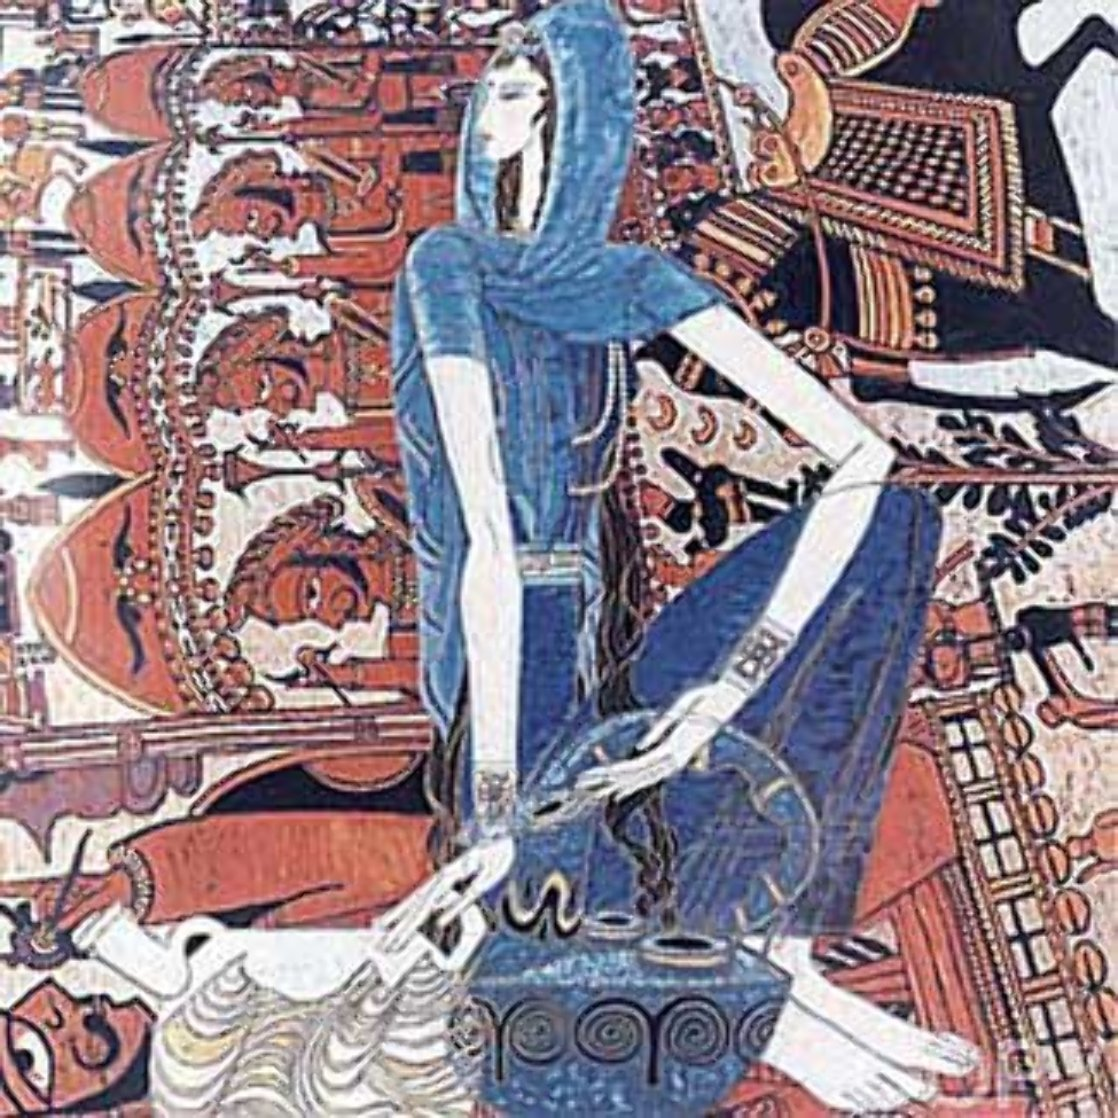 Eastern Song 1989 Limited Edition Print by Shao Kuang Ting